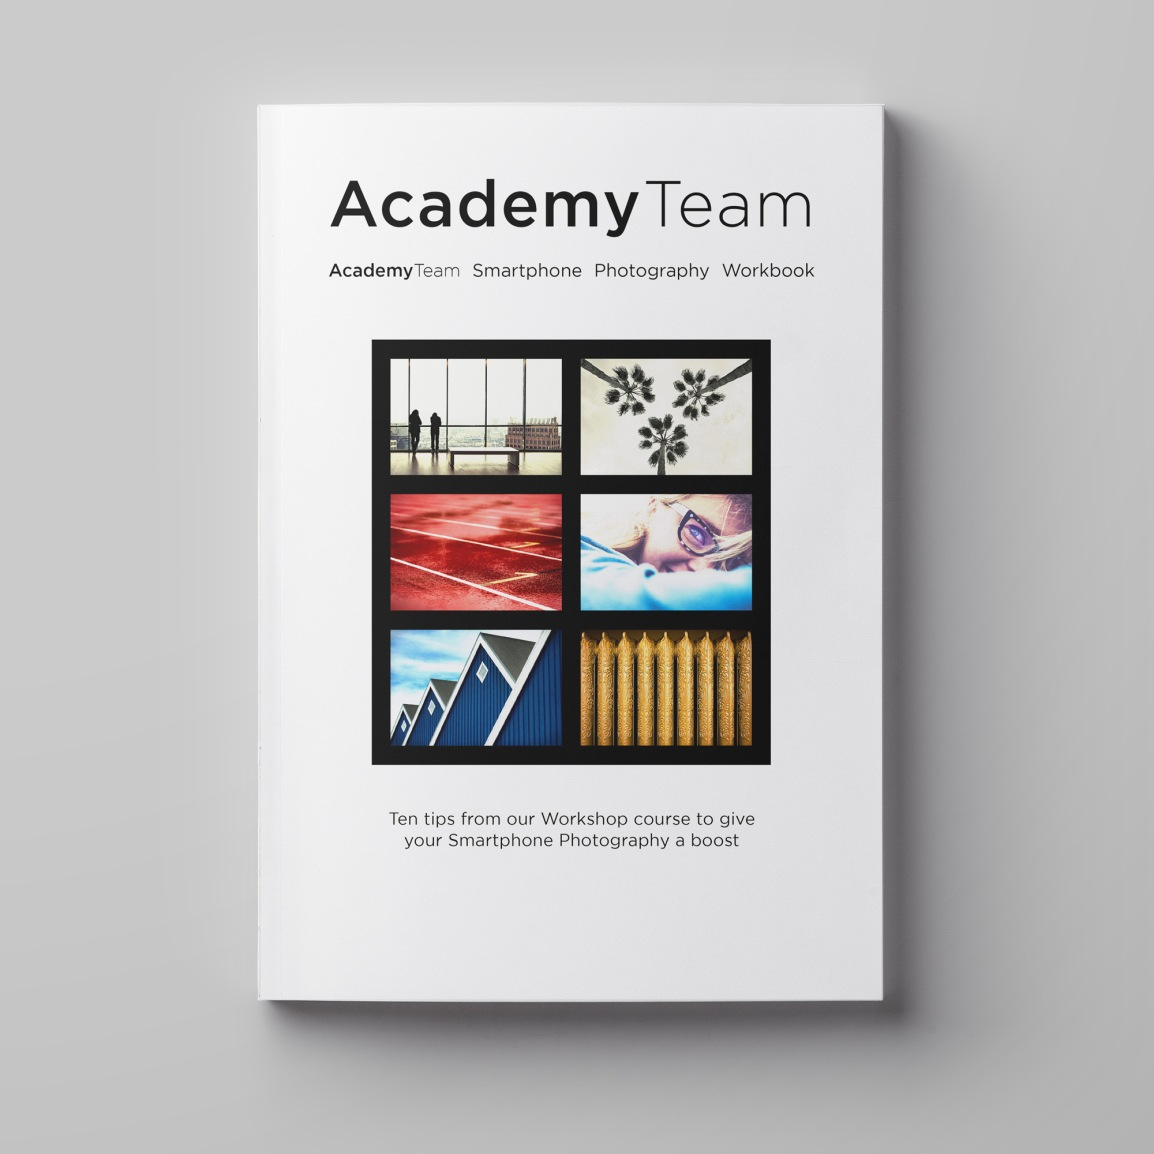 AcademyTeam Smartphone Photography Workshop Workbook